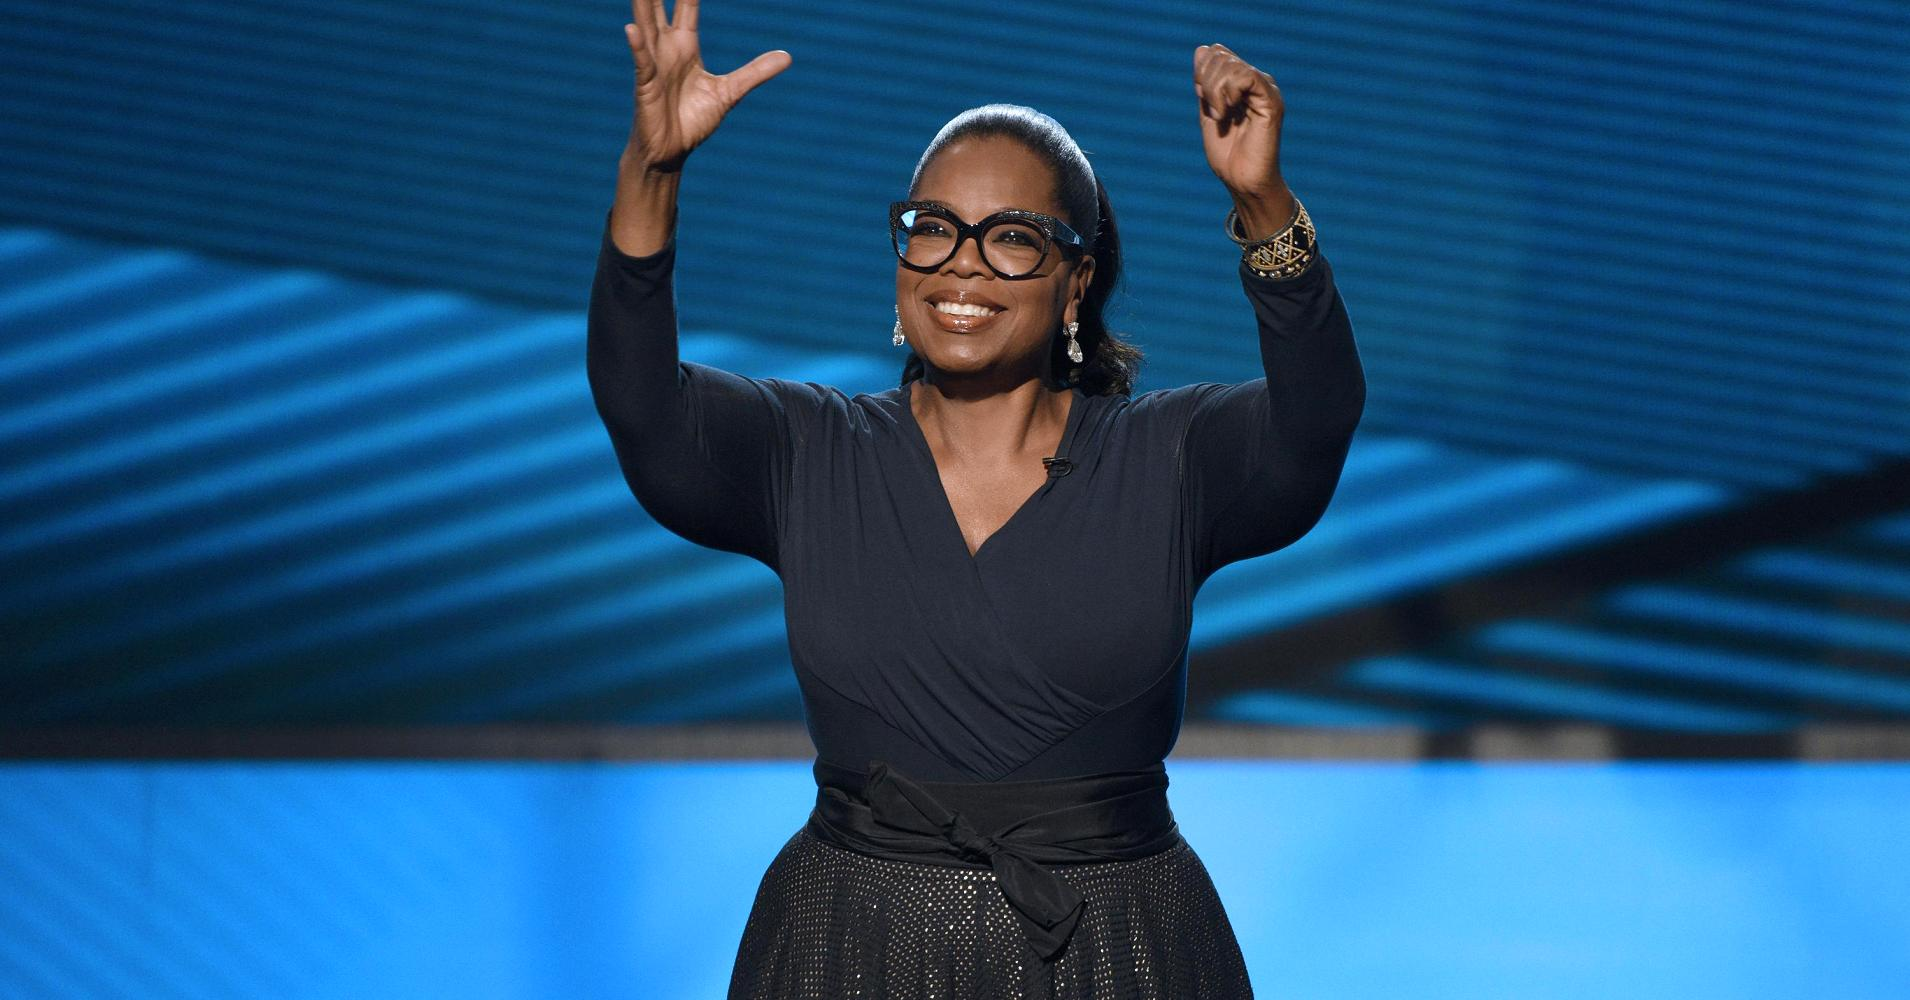 Oprah Went to the Bank for the First Time Since 1988 to Deposit $2 Million